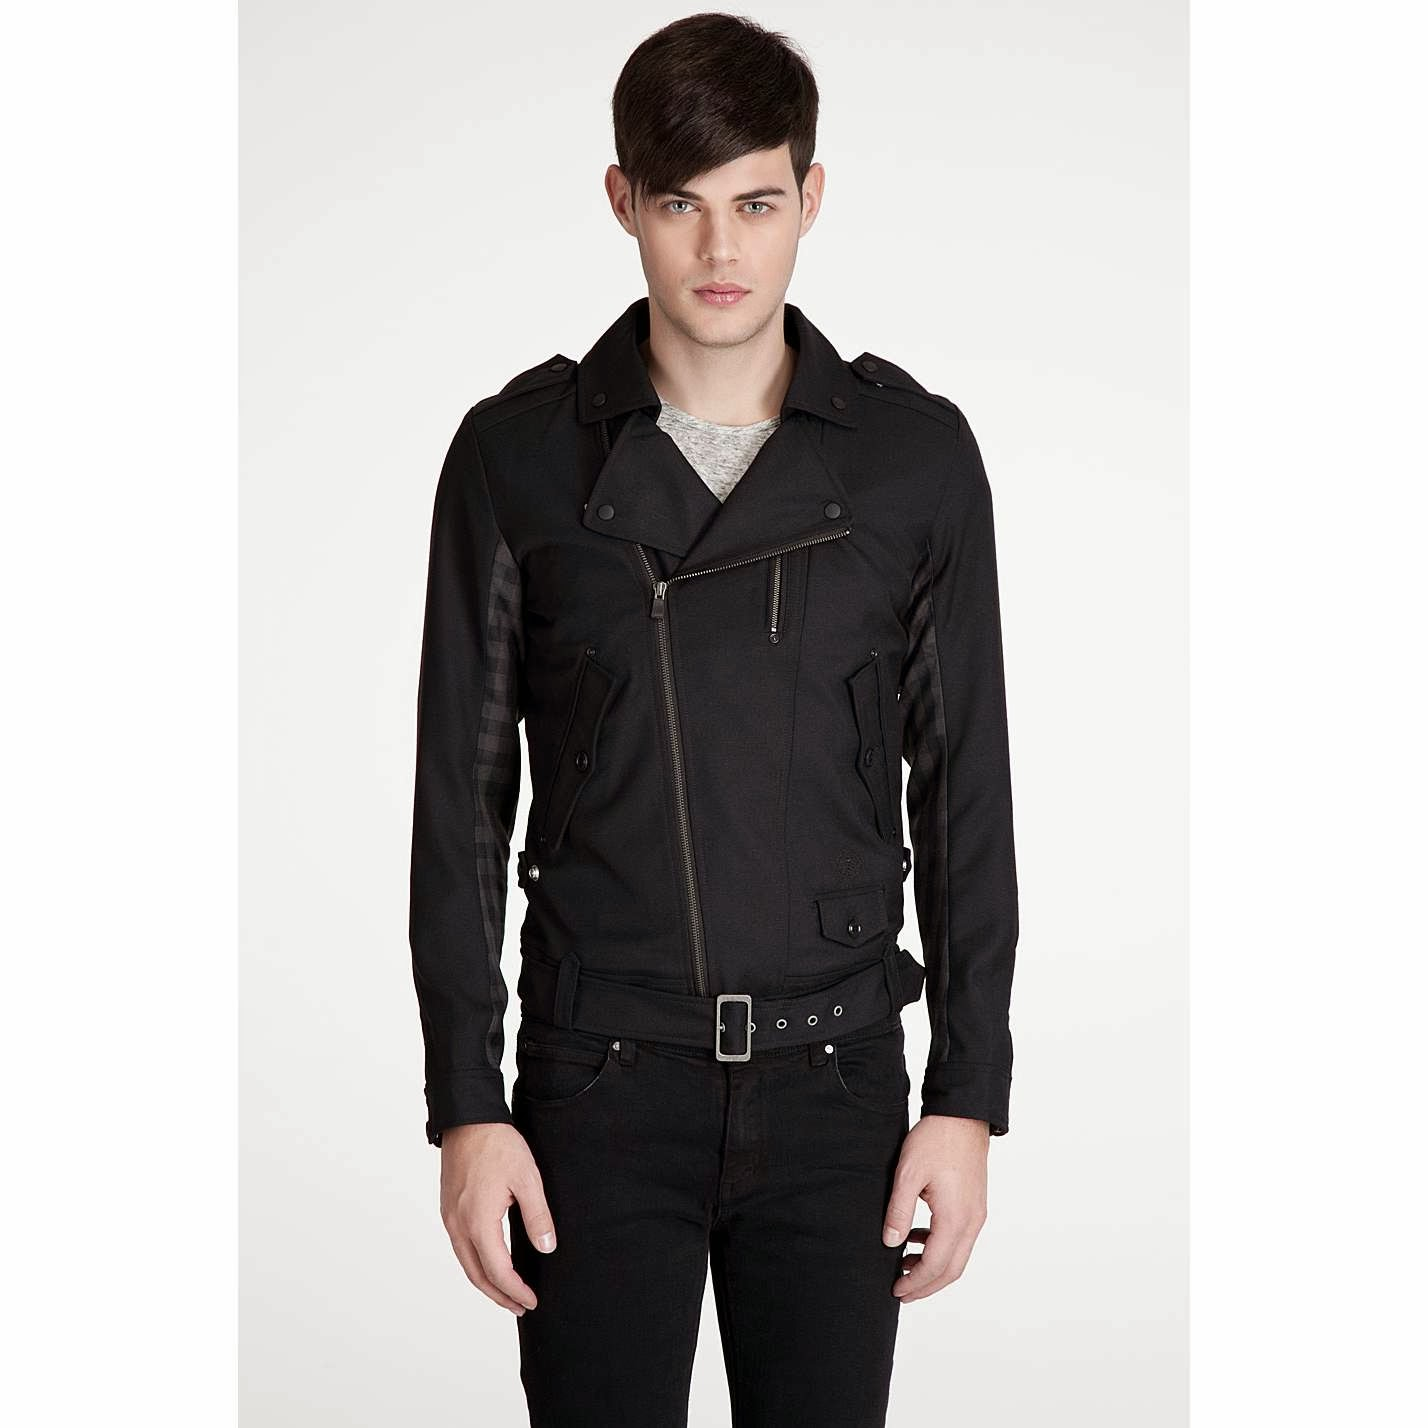 Clothing And Fashion Design Men Fashion Clothes